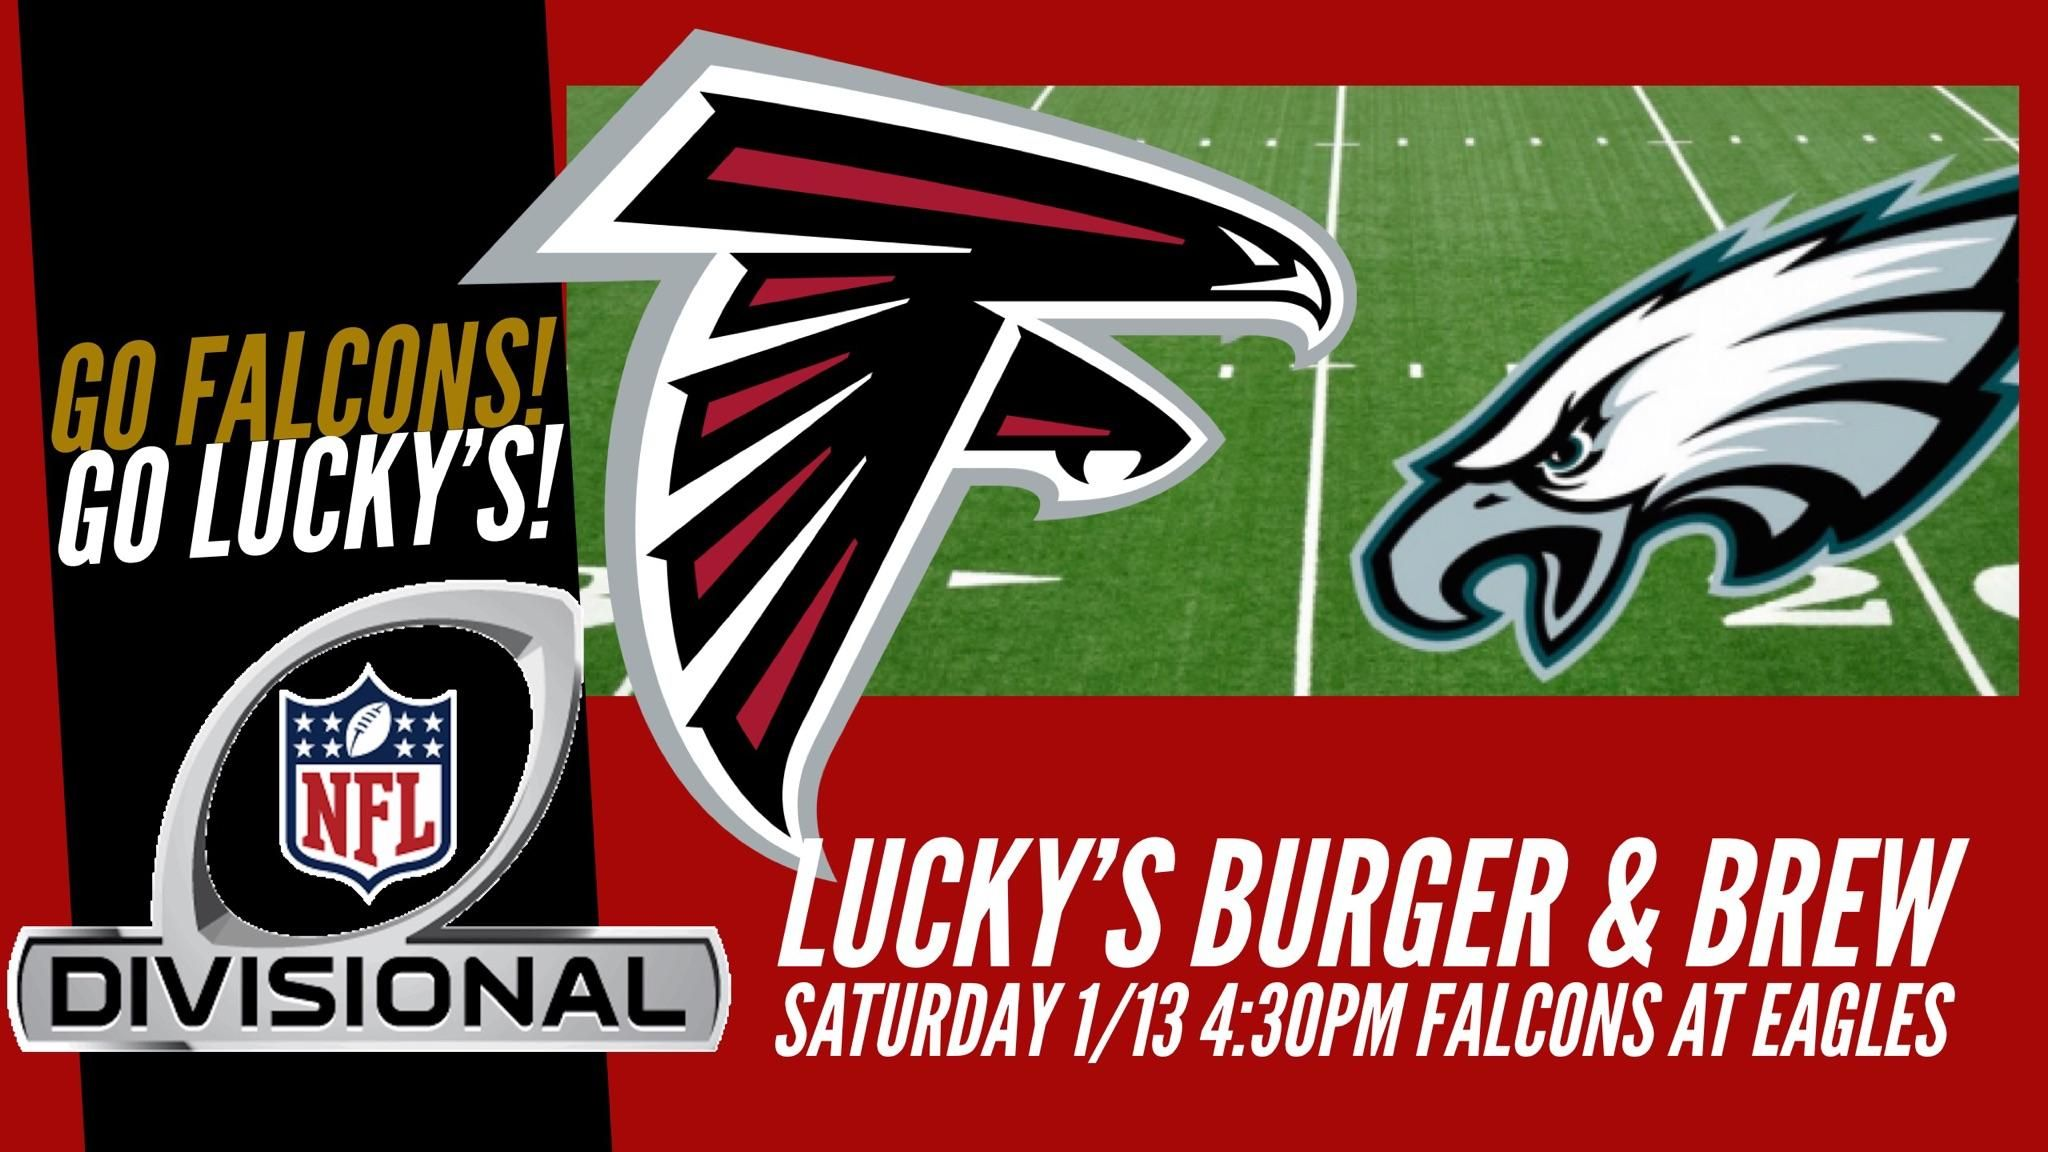 It S Go Time Post Up Rise Up And Win Cancun At Luckysbrookhaven Nfc Divisional Playoffs Atlanta Falcons At Phillidelphi Atlanta Restaurants Lucky